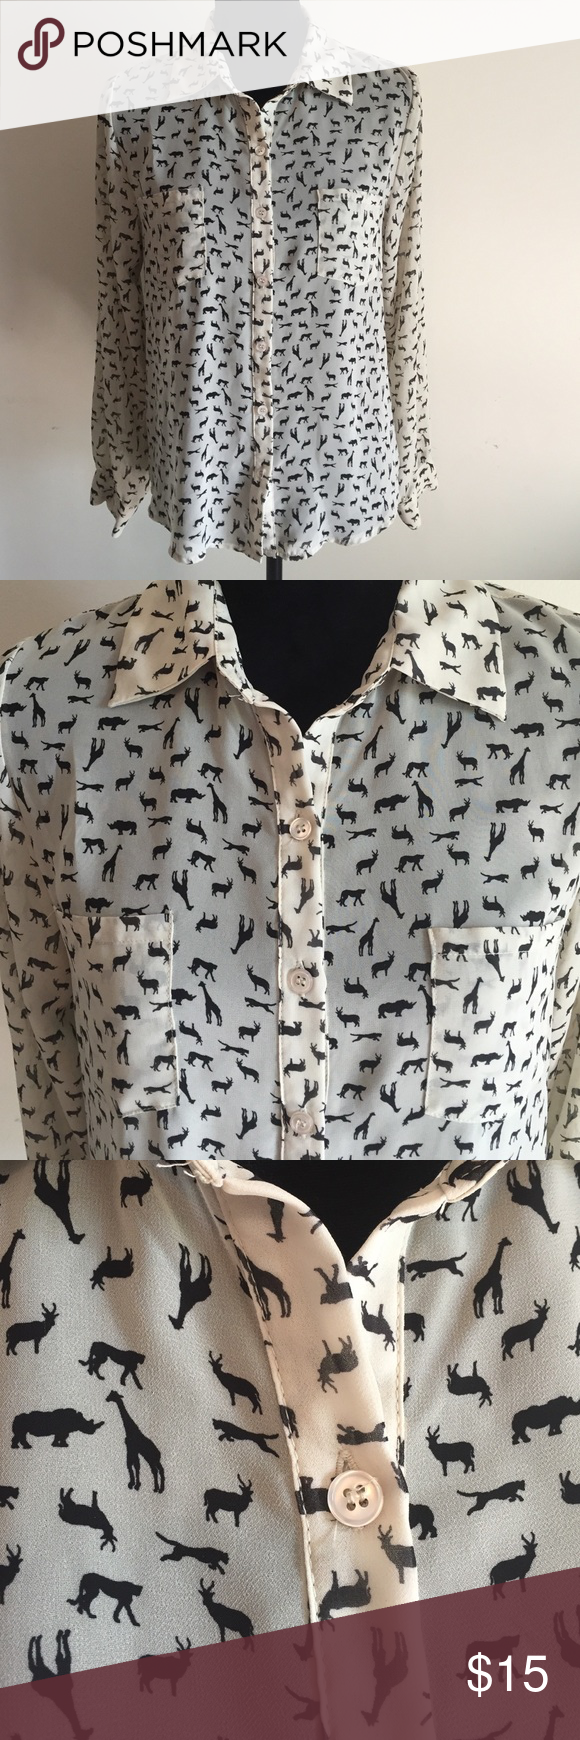 Safari anyone? Xhilaraion blouse! Size: Medium This serious yet playful Xhilaration blouse is long sleeved but sheer and light; could be worn in any season. For summer, pair with a tank and in colder months wear with a jacket for home or work. 100% polyester. Size: M. Xhilaration Tops Button Down Shirts